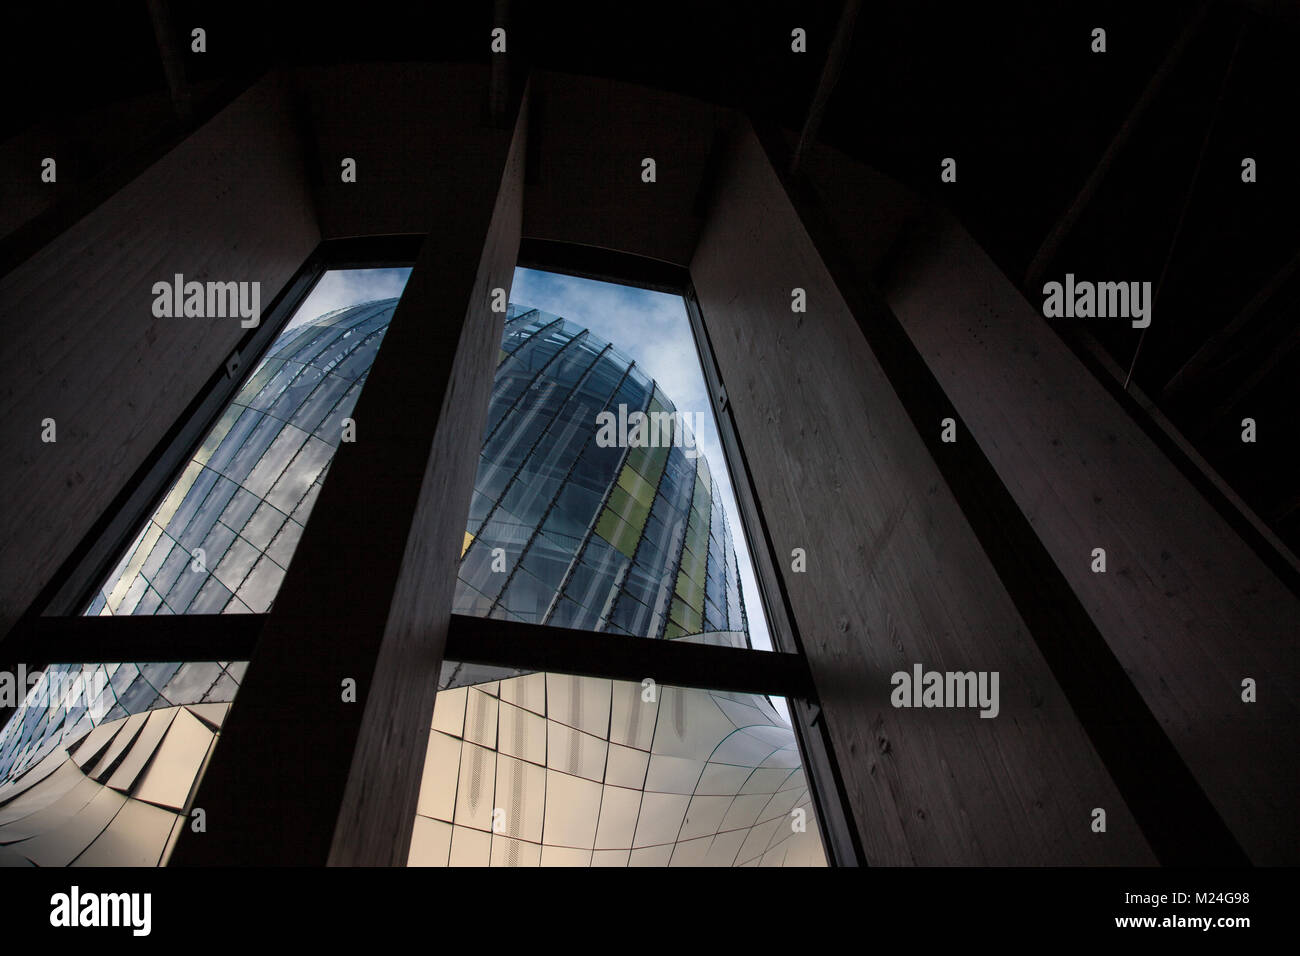 BORDEAUX, FRANCE - DECEMBER 27, 2017: Cite du Vin main tower seen from the inside during a sunny afternoon. Cite - Stock Image